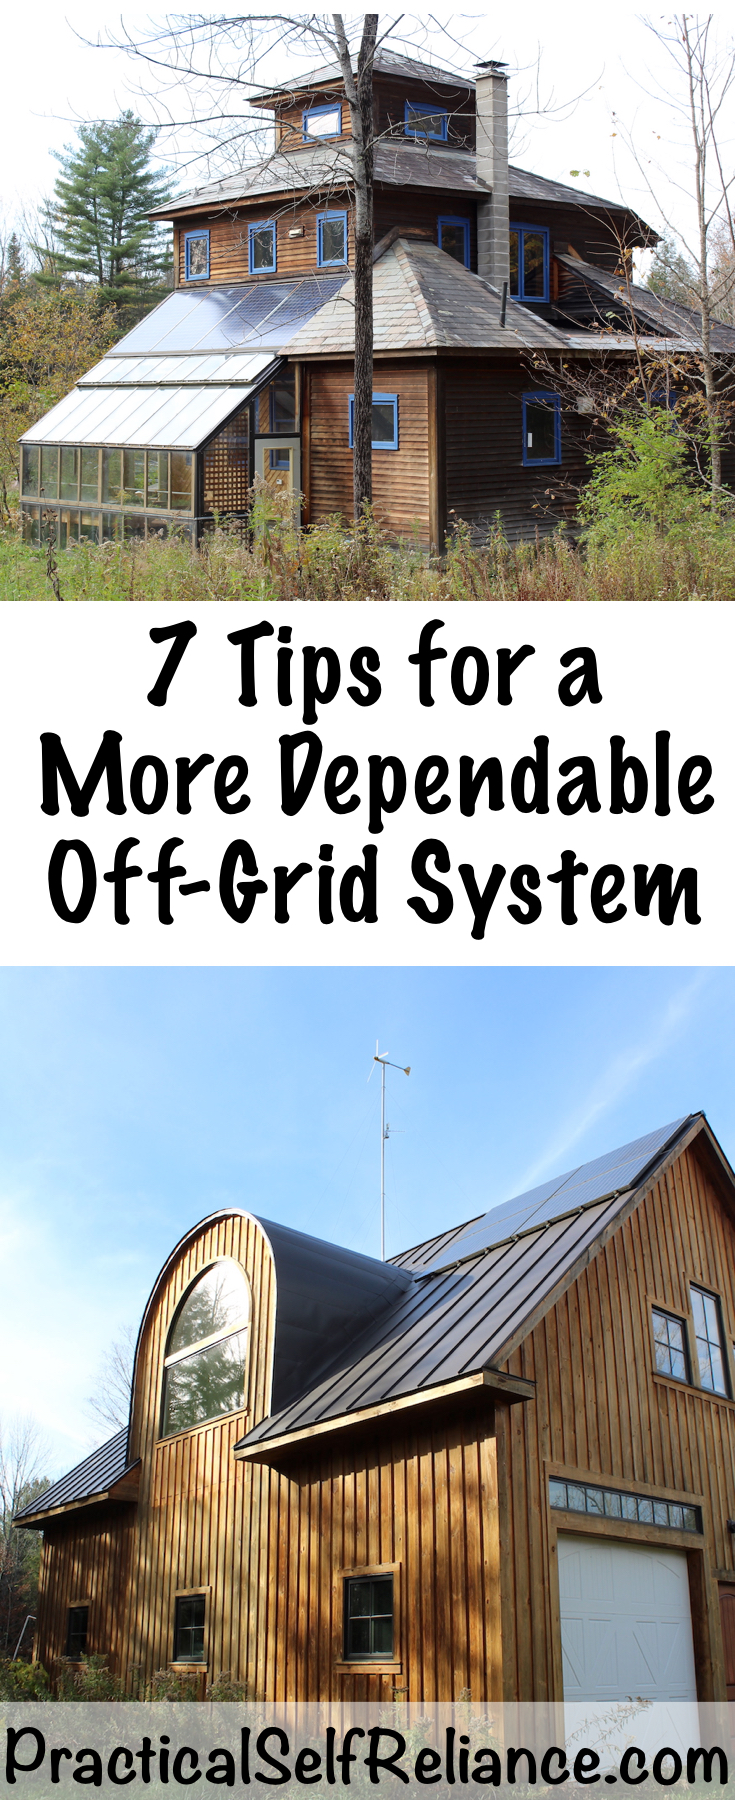 7 Tips for a More Dependable Off-Grid System ~ Creating a Reliable System #offgrid #preparedness #survival #shtf #homesteading #prepper #selfsufficiency #selfreliant